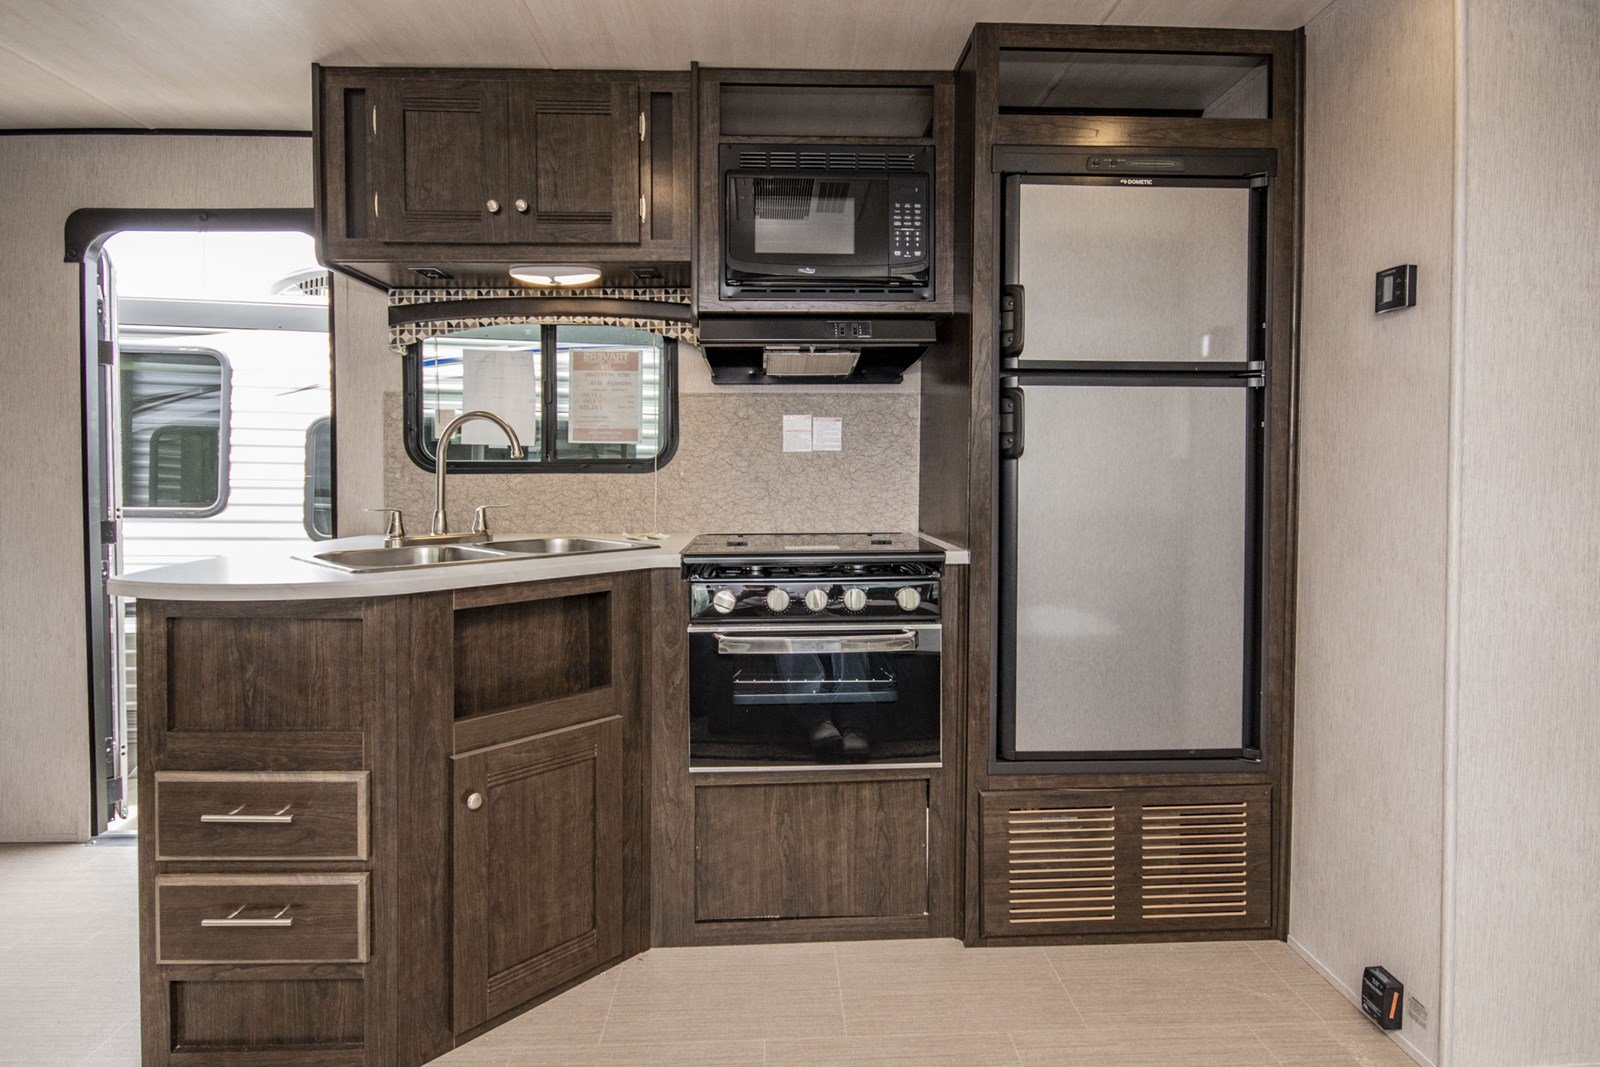 Kitchen is furnished with plasticware and cleaning supplies.. Heartland Prowler Lynx 2019